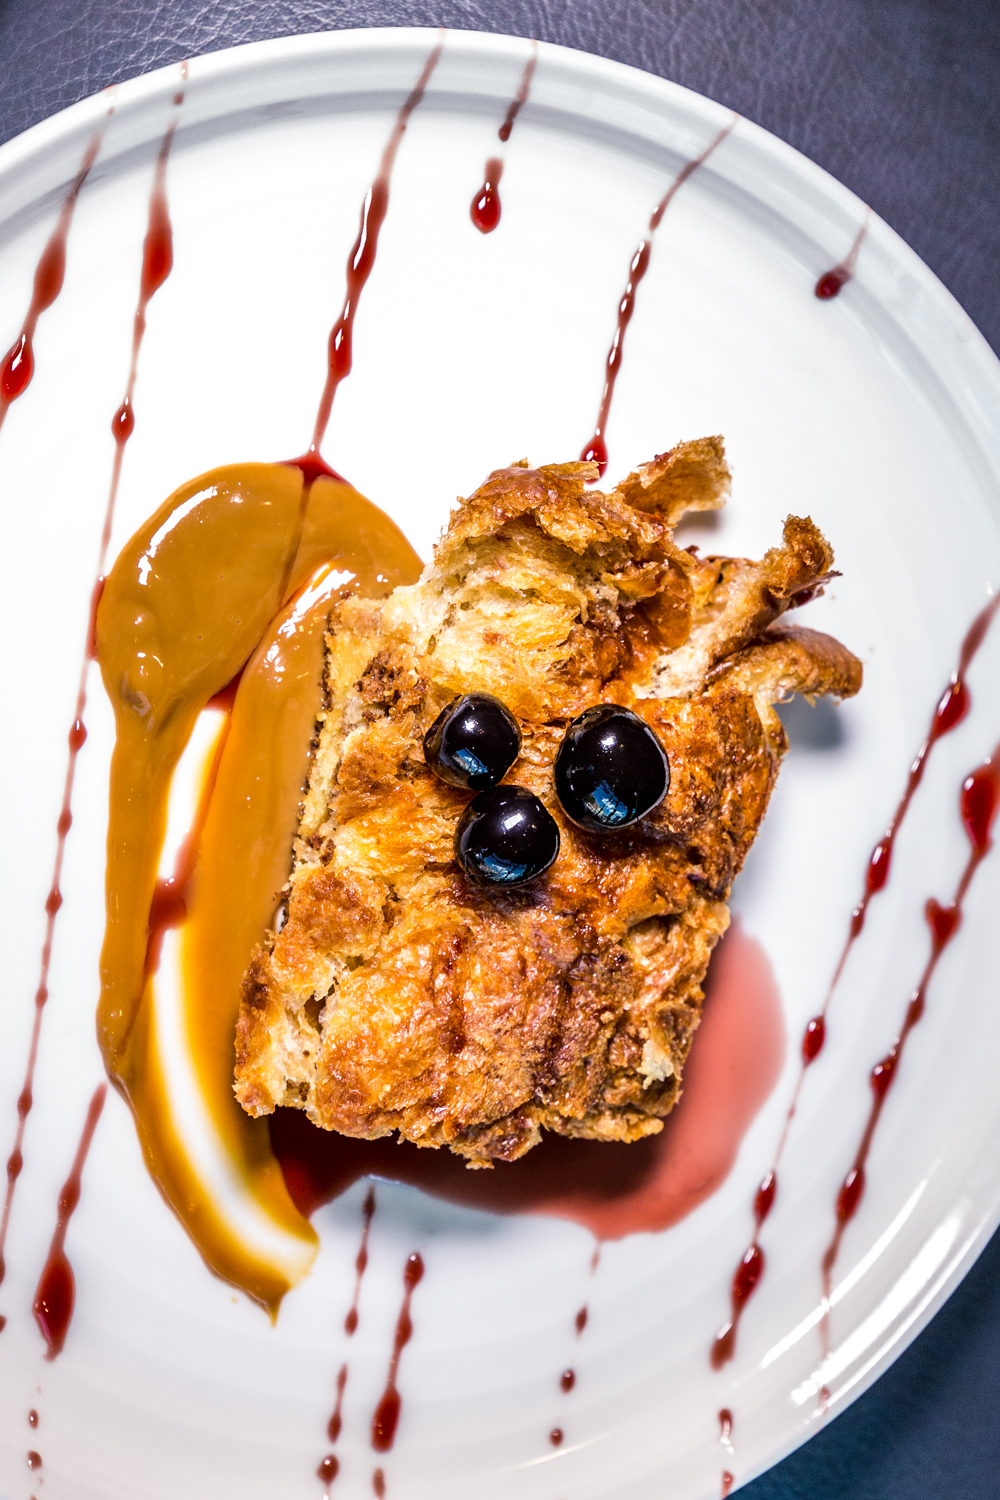 Parlor Bread Pudding: buttery and soft croissant bread pudding with homemade warm caramel sauce, Luxardo cherries, and cherry cordial drizzle / Image: Catherine Viox // Published: 10.10.19